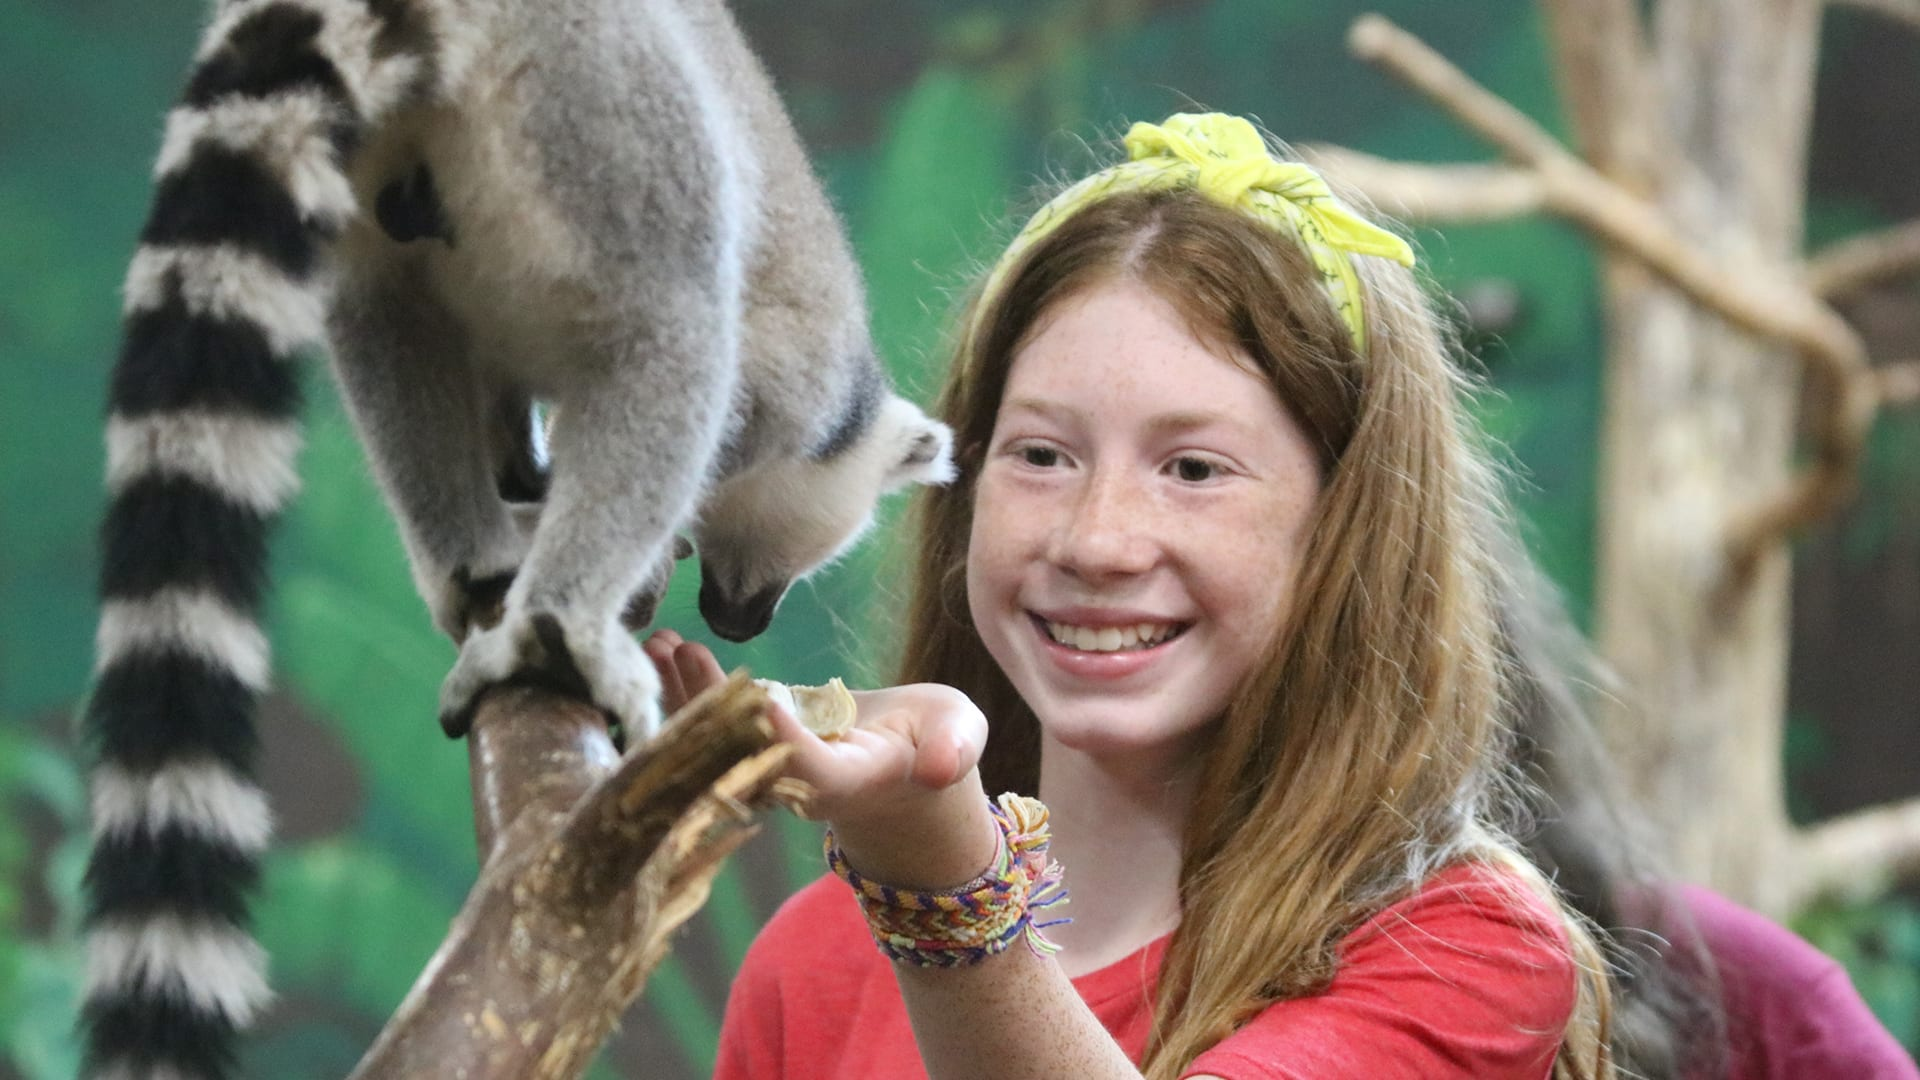 Home Page Image Carousel - Animal Camp - Camper interacting with Ringtail Lemurs - Cub Creek Science and Animal Camp